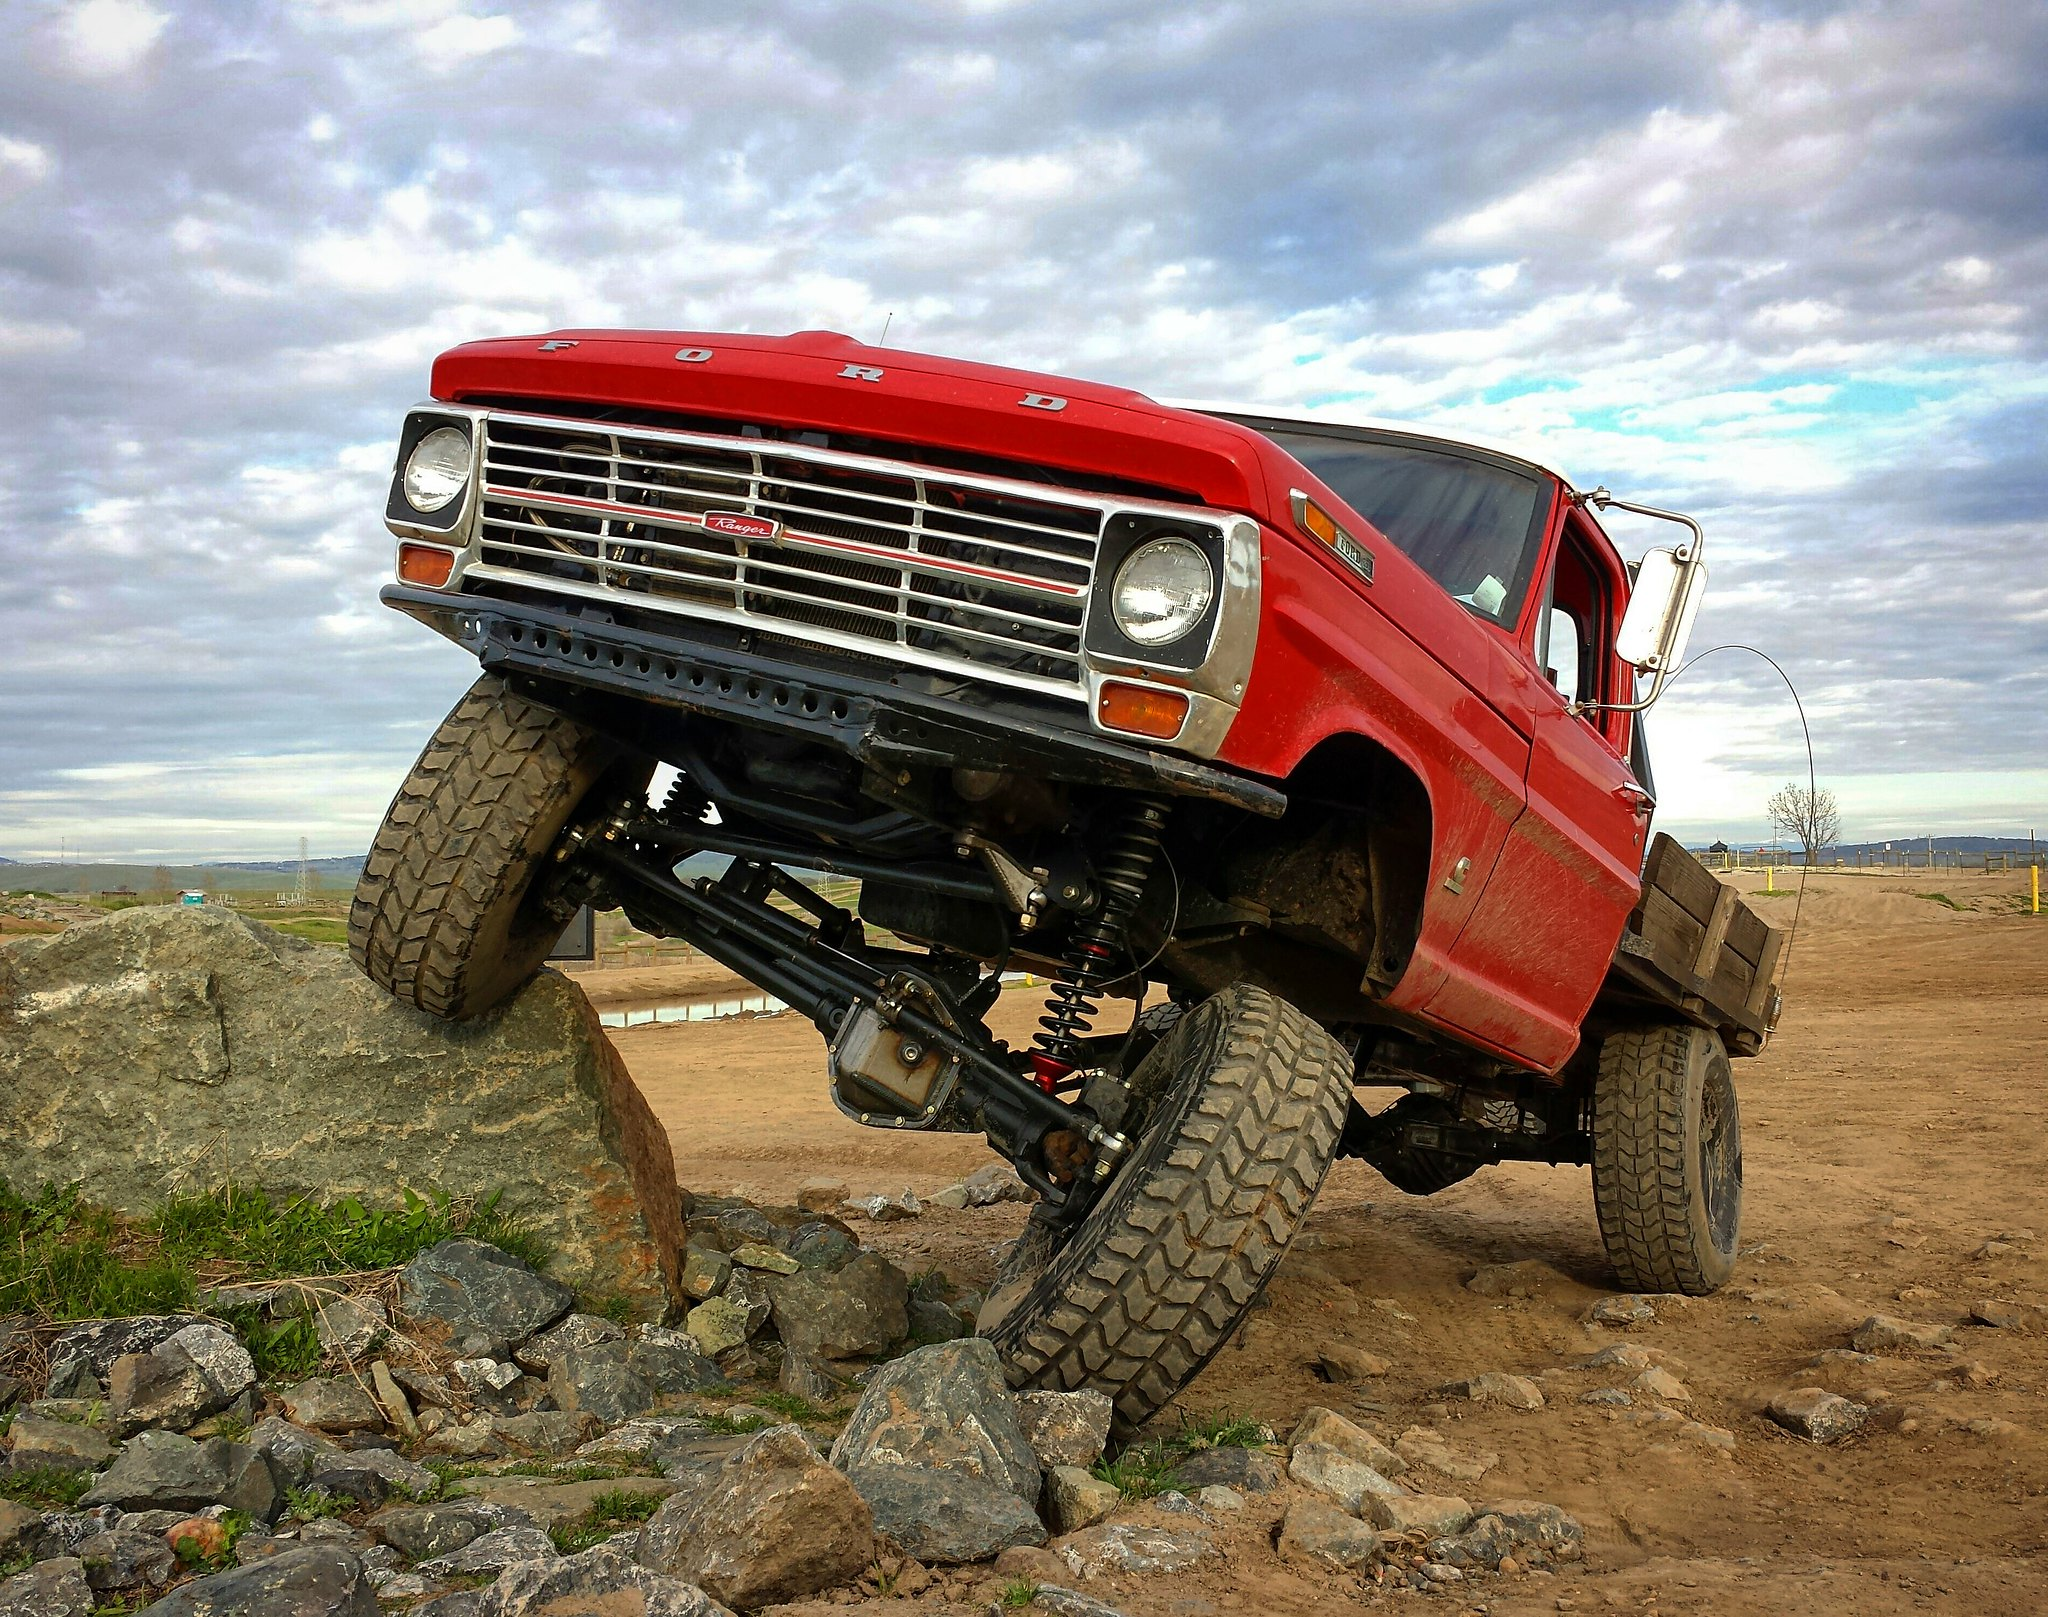 1969 Ford Highboy 4x4 Wiring Diagrams F 250 Crew Cab For Sale F250 Project Page 12 Pirate4x4 Com And Rh Value